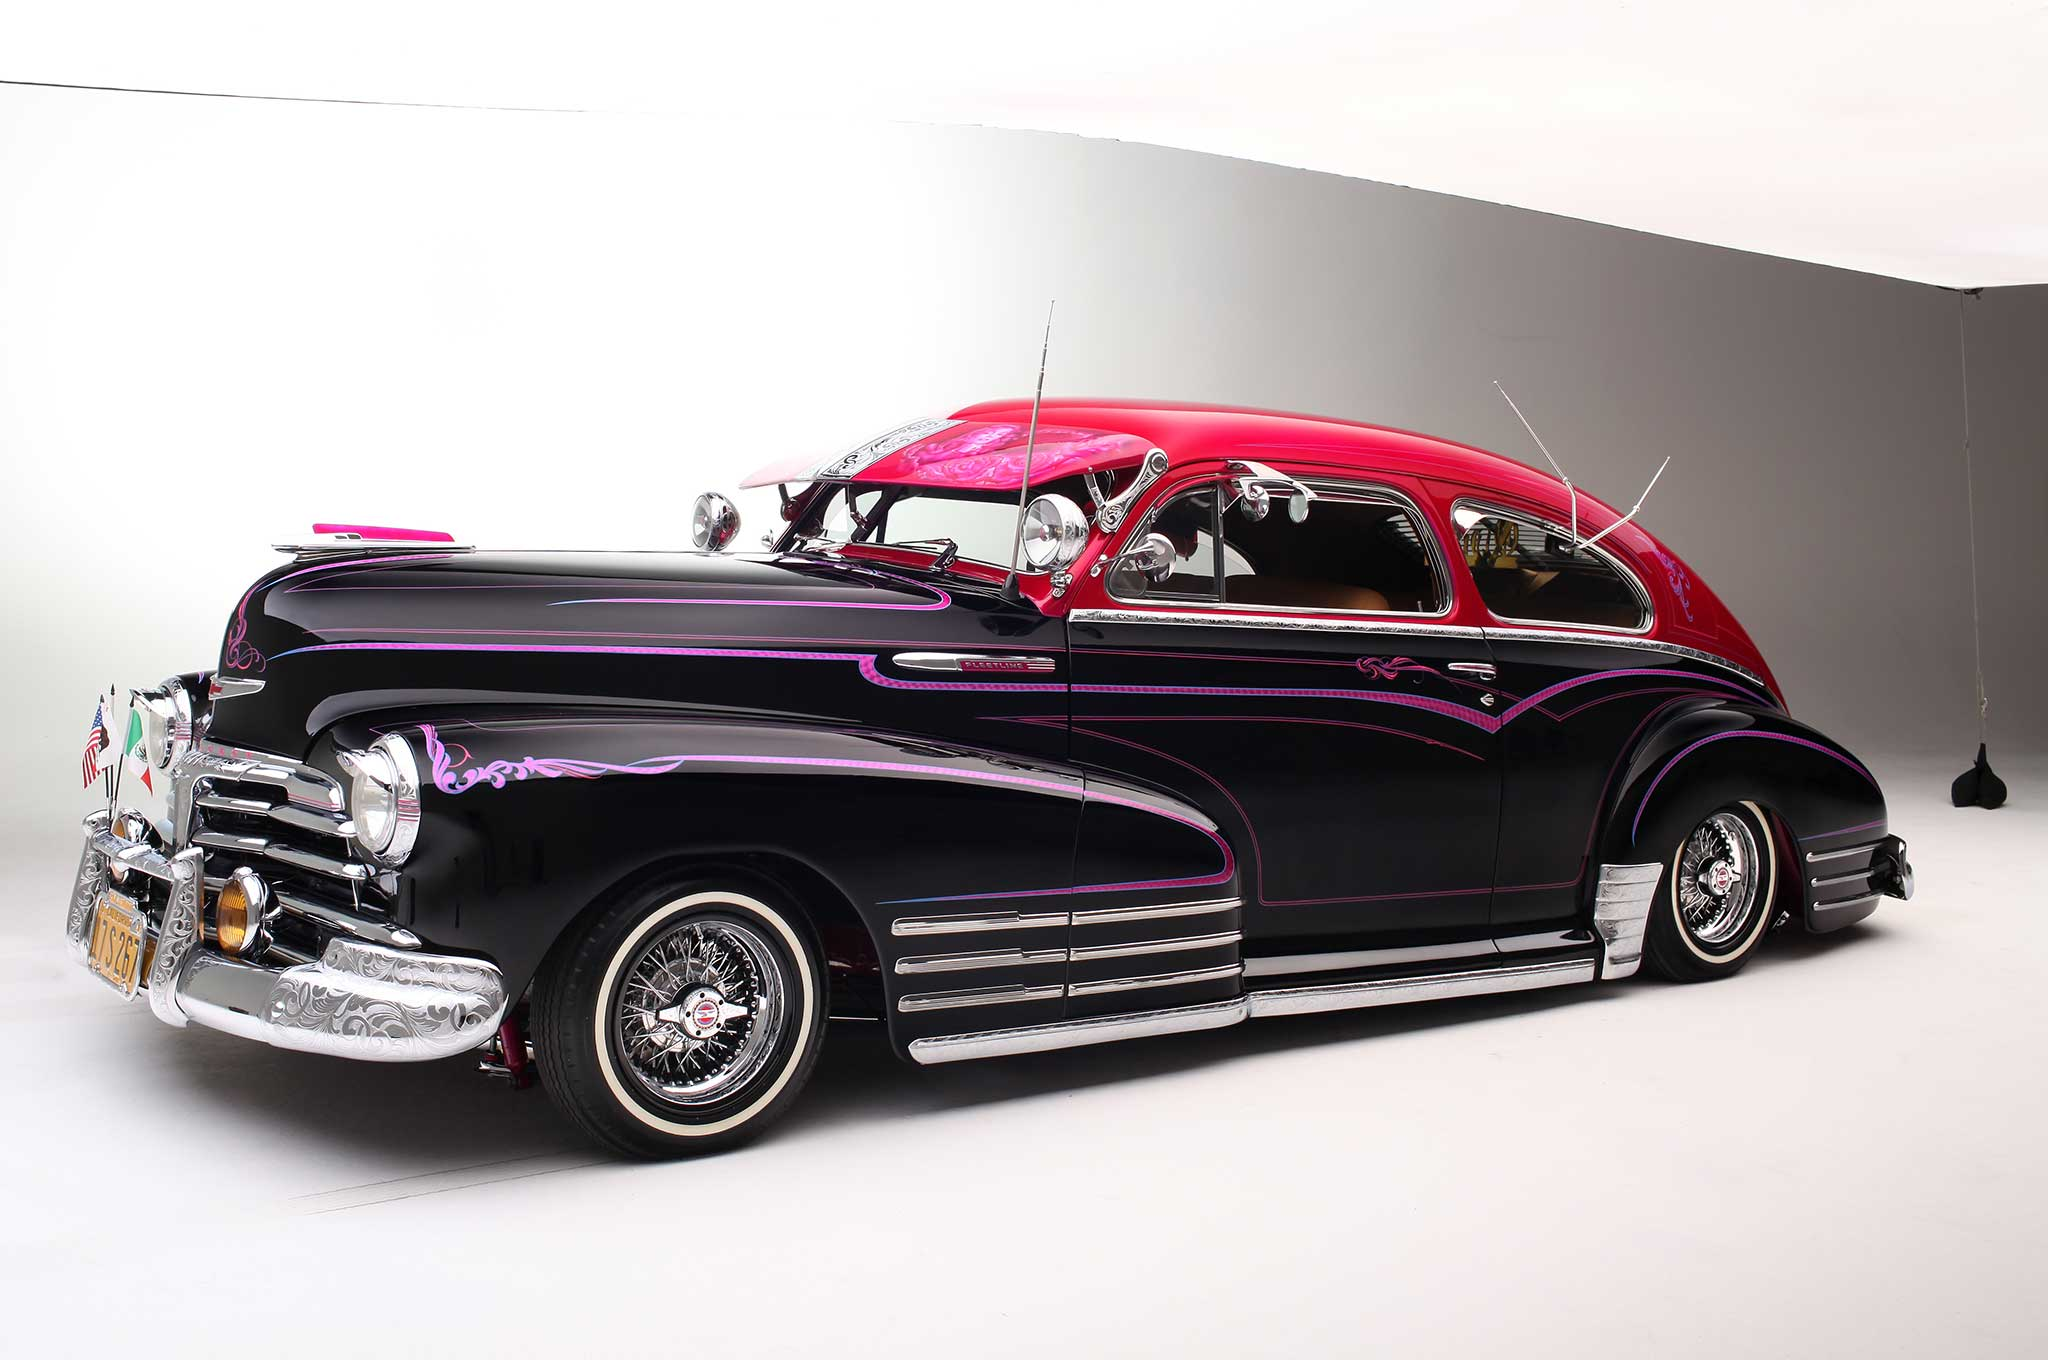 1948 Chevrolet Fleetline - Bombing Tinseltown - Lowrider